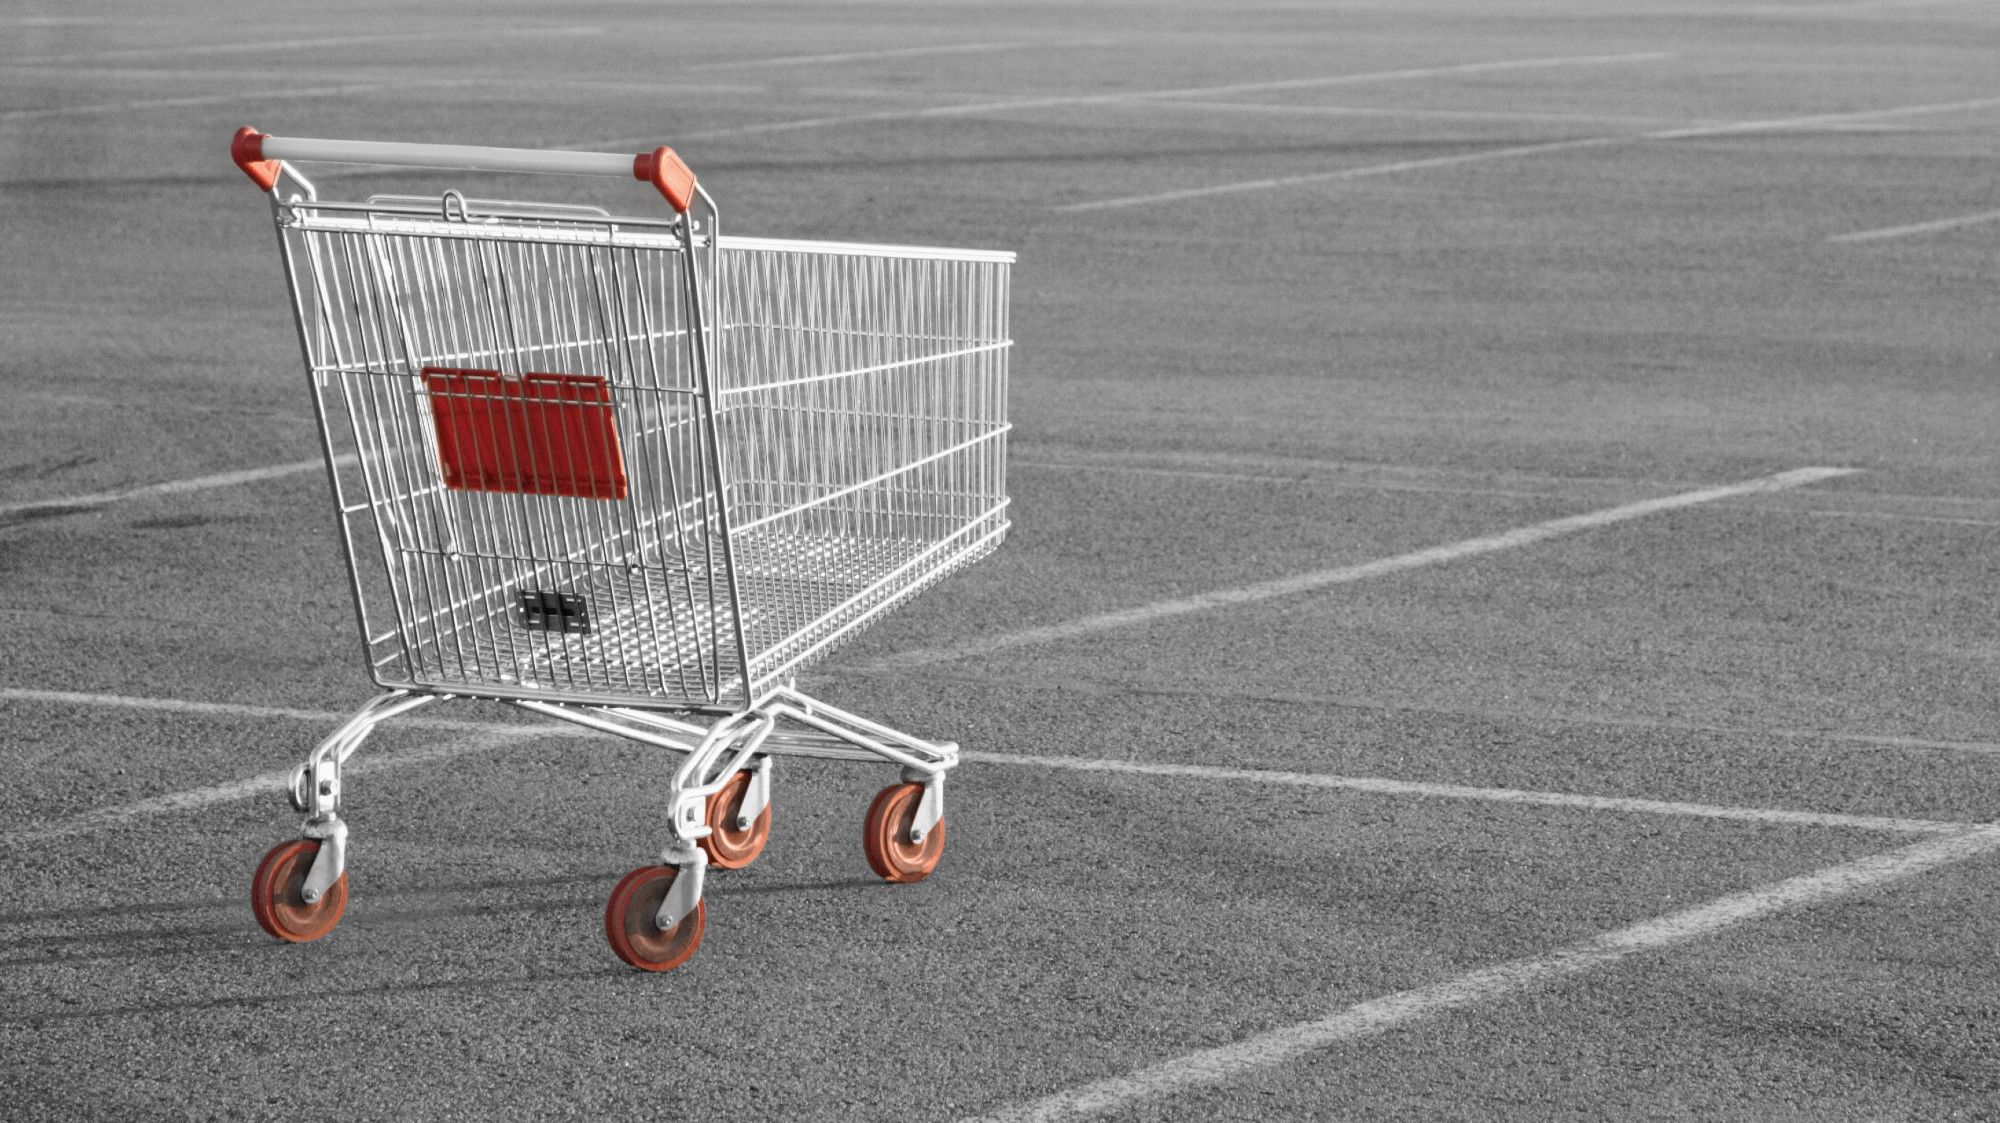 The Reason Some People Never Return Shopping Carts, According to Science